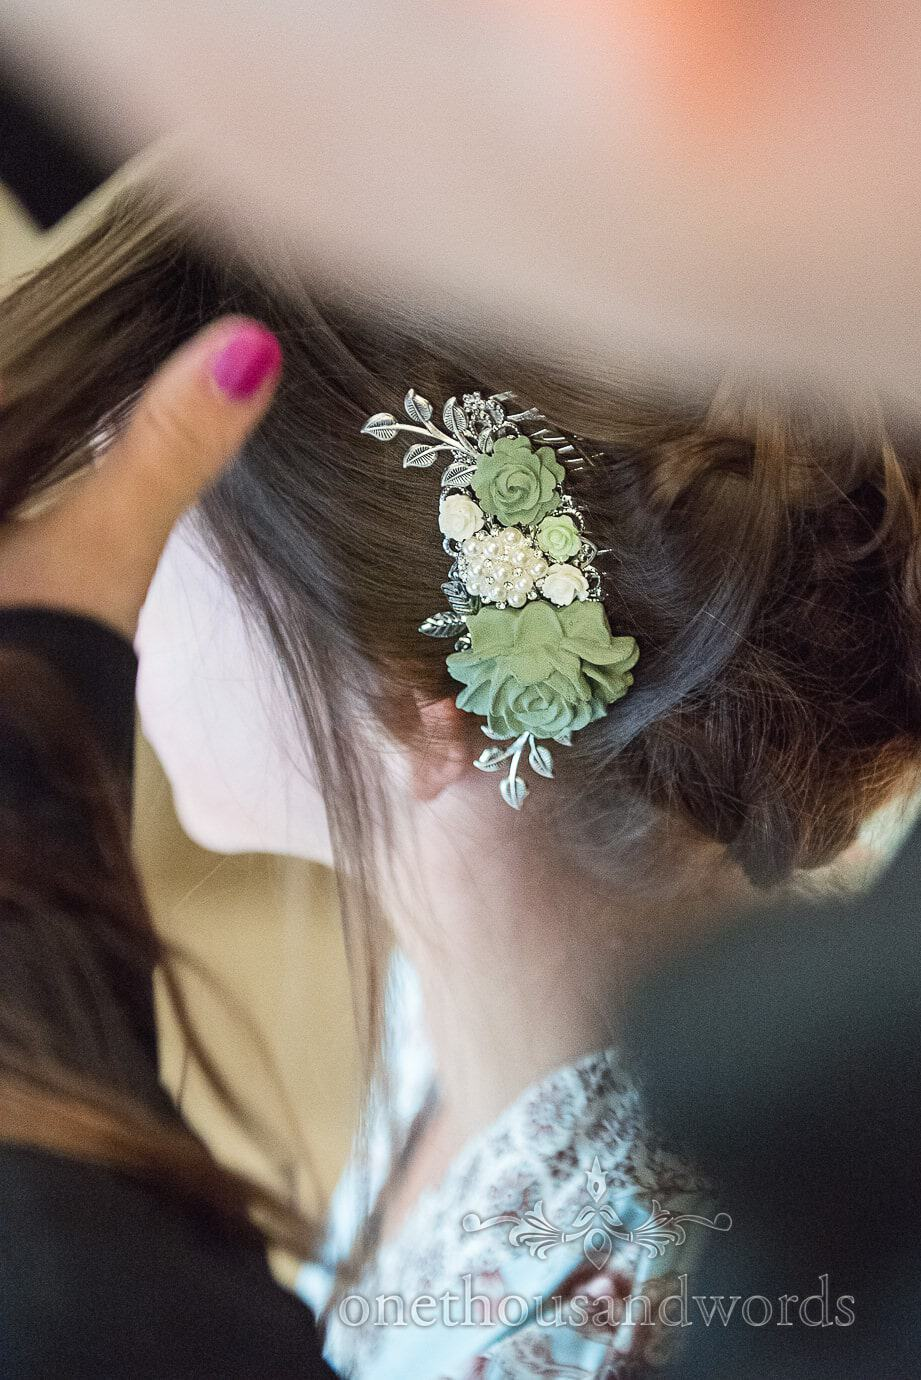 beautiful bridal green, white and silver floral hair grip added to wedding hair